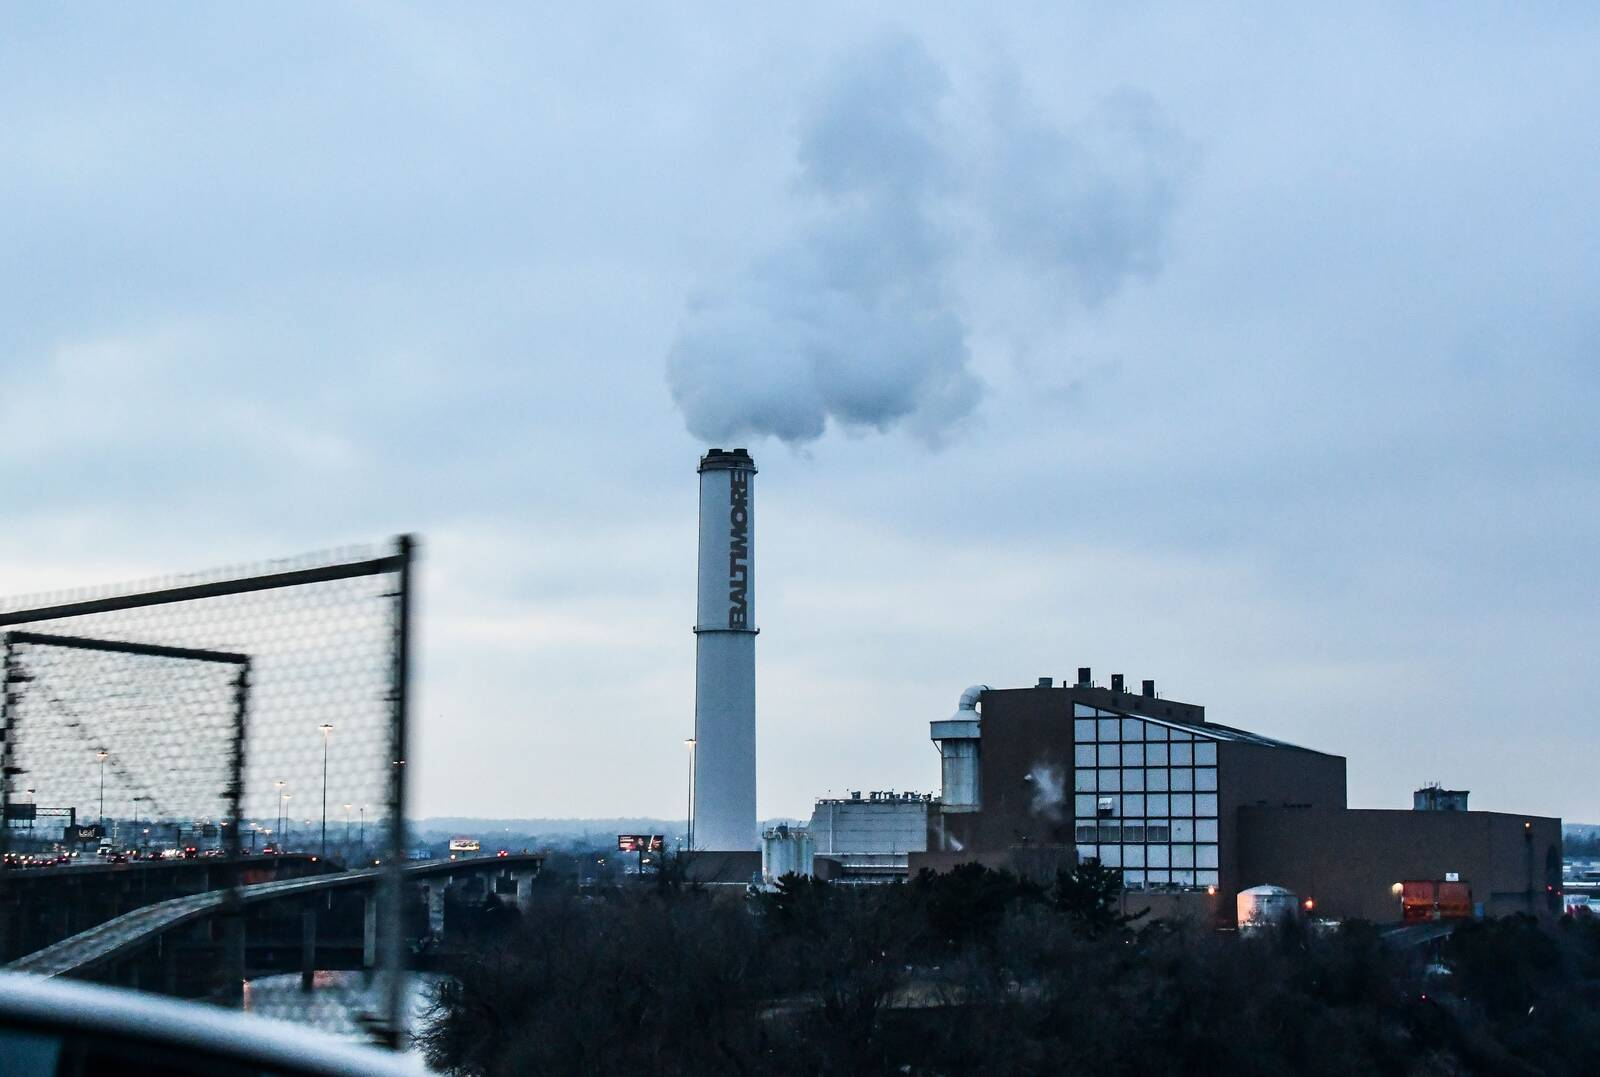 The smokestack of the Wheelabrator Incinerator is seen near Interstate 95 in Baltimore, Maryland on March 9, 2019. Credit: EVA CLAIRE HAMBACH,EVA HAMBACH/AFP via Getty Images